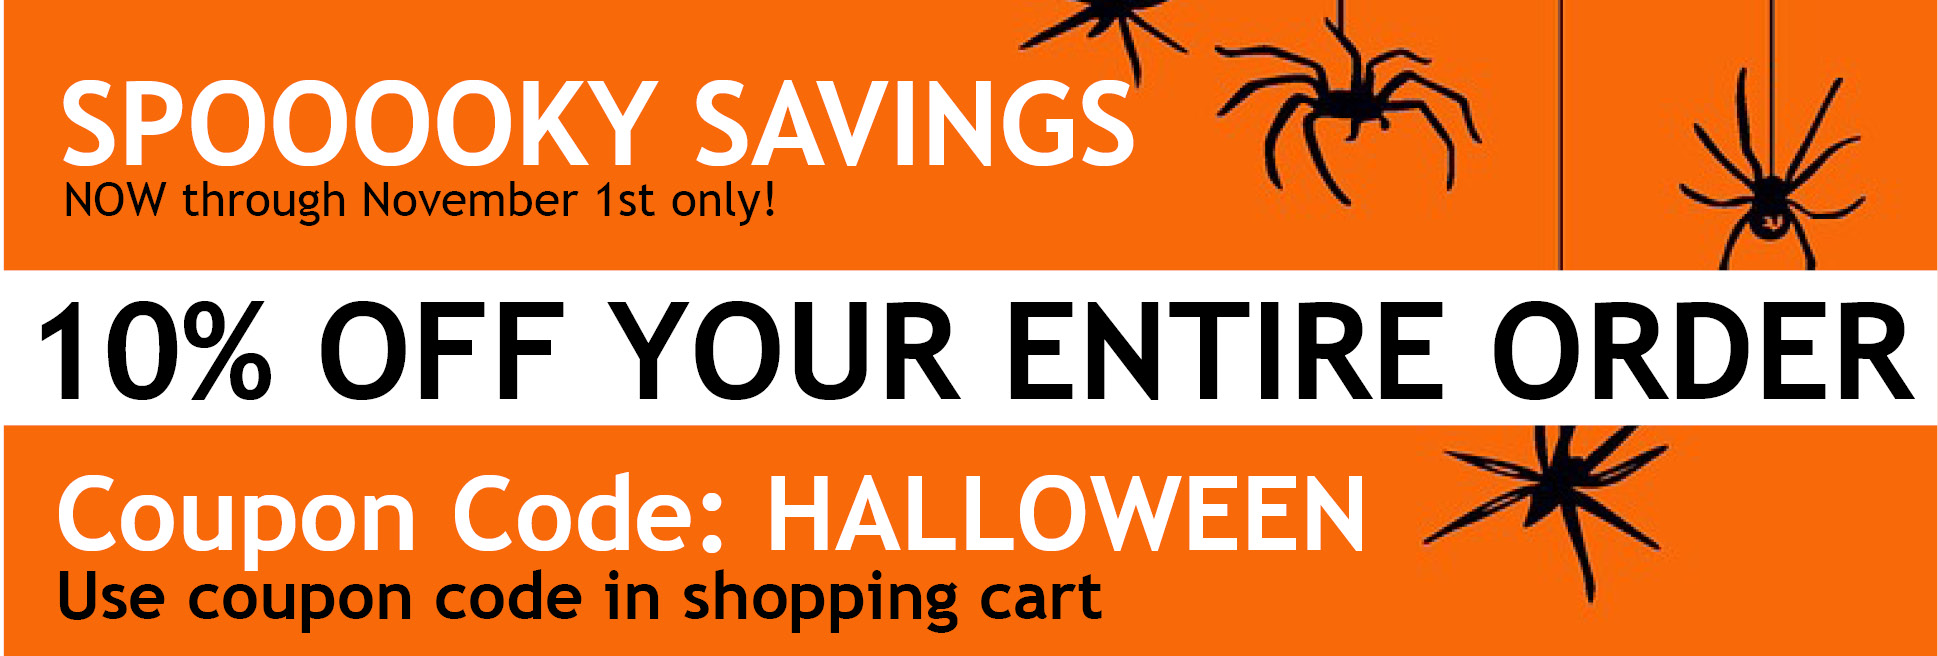 Chefs Planet Specials Halloween Discount Savings